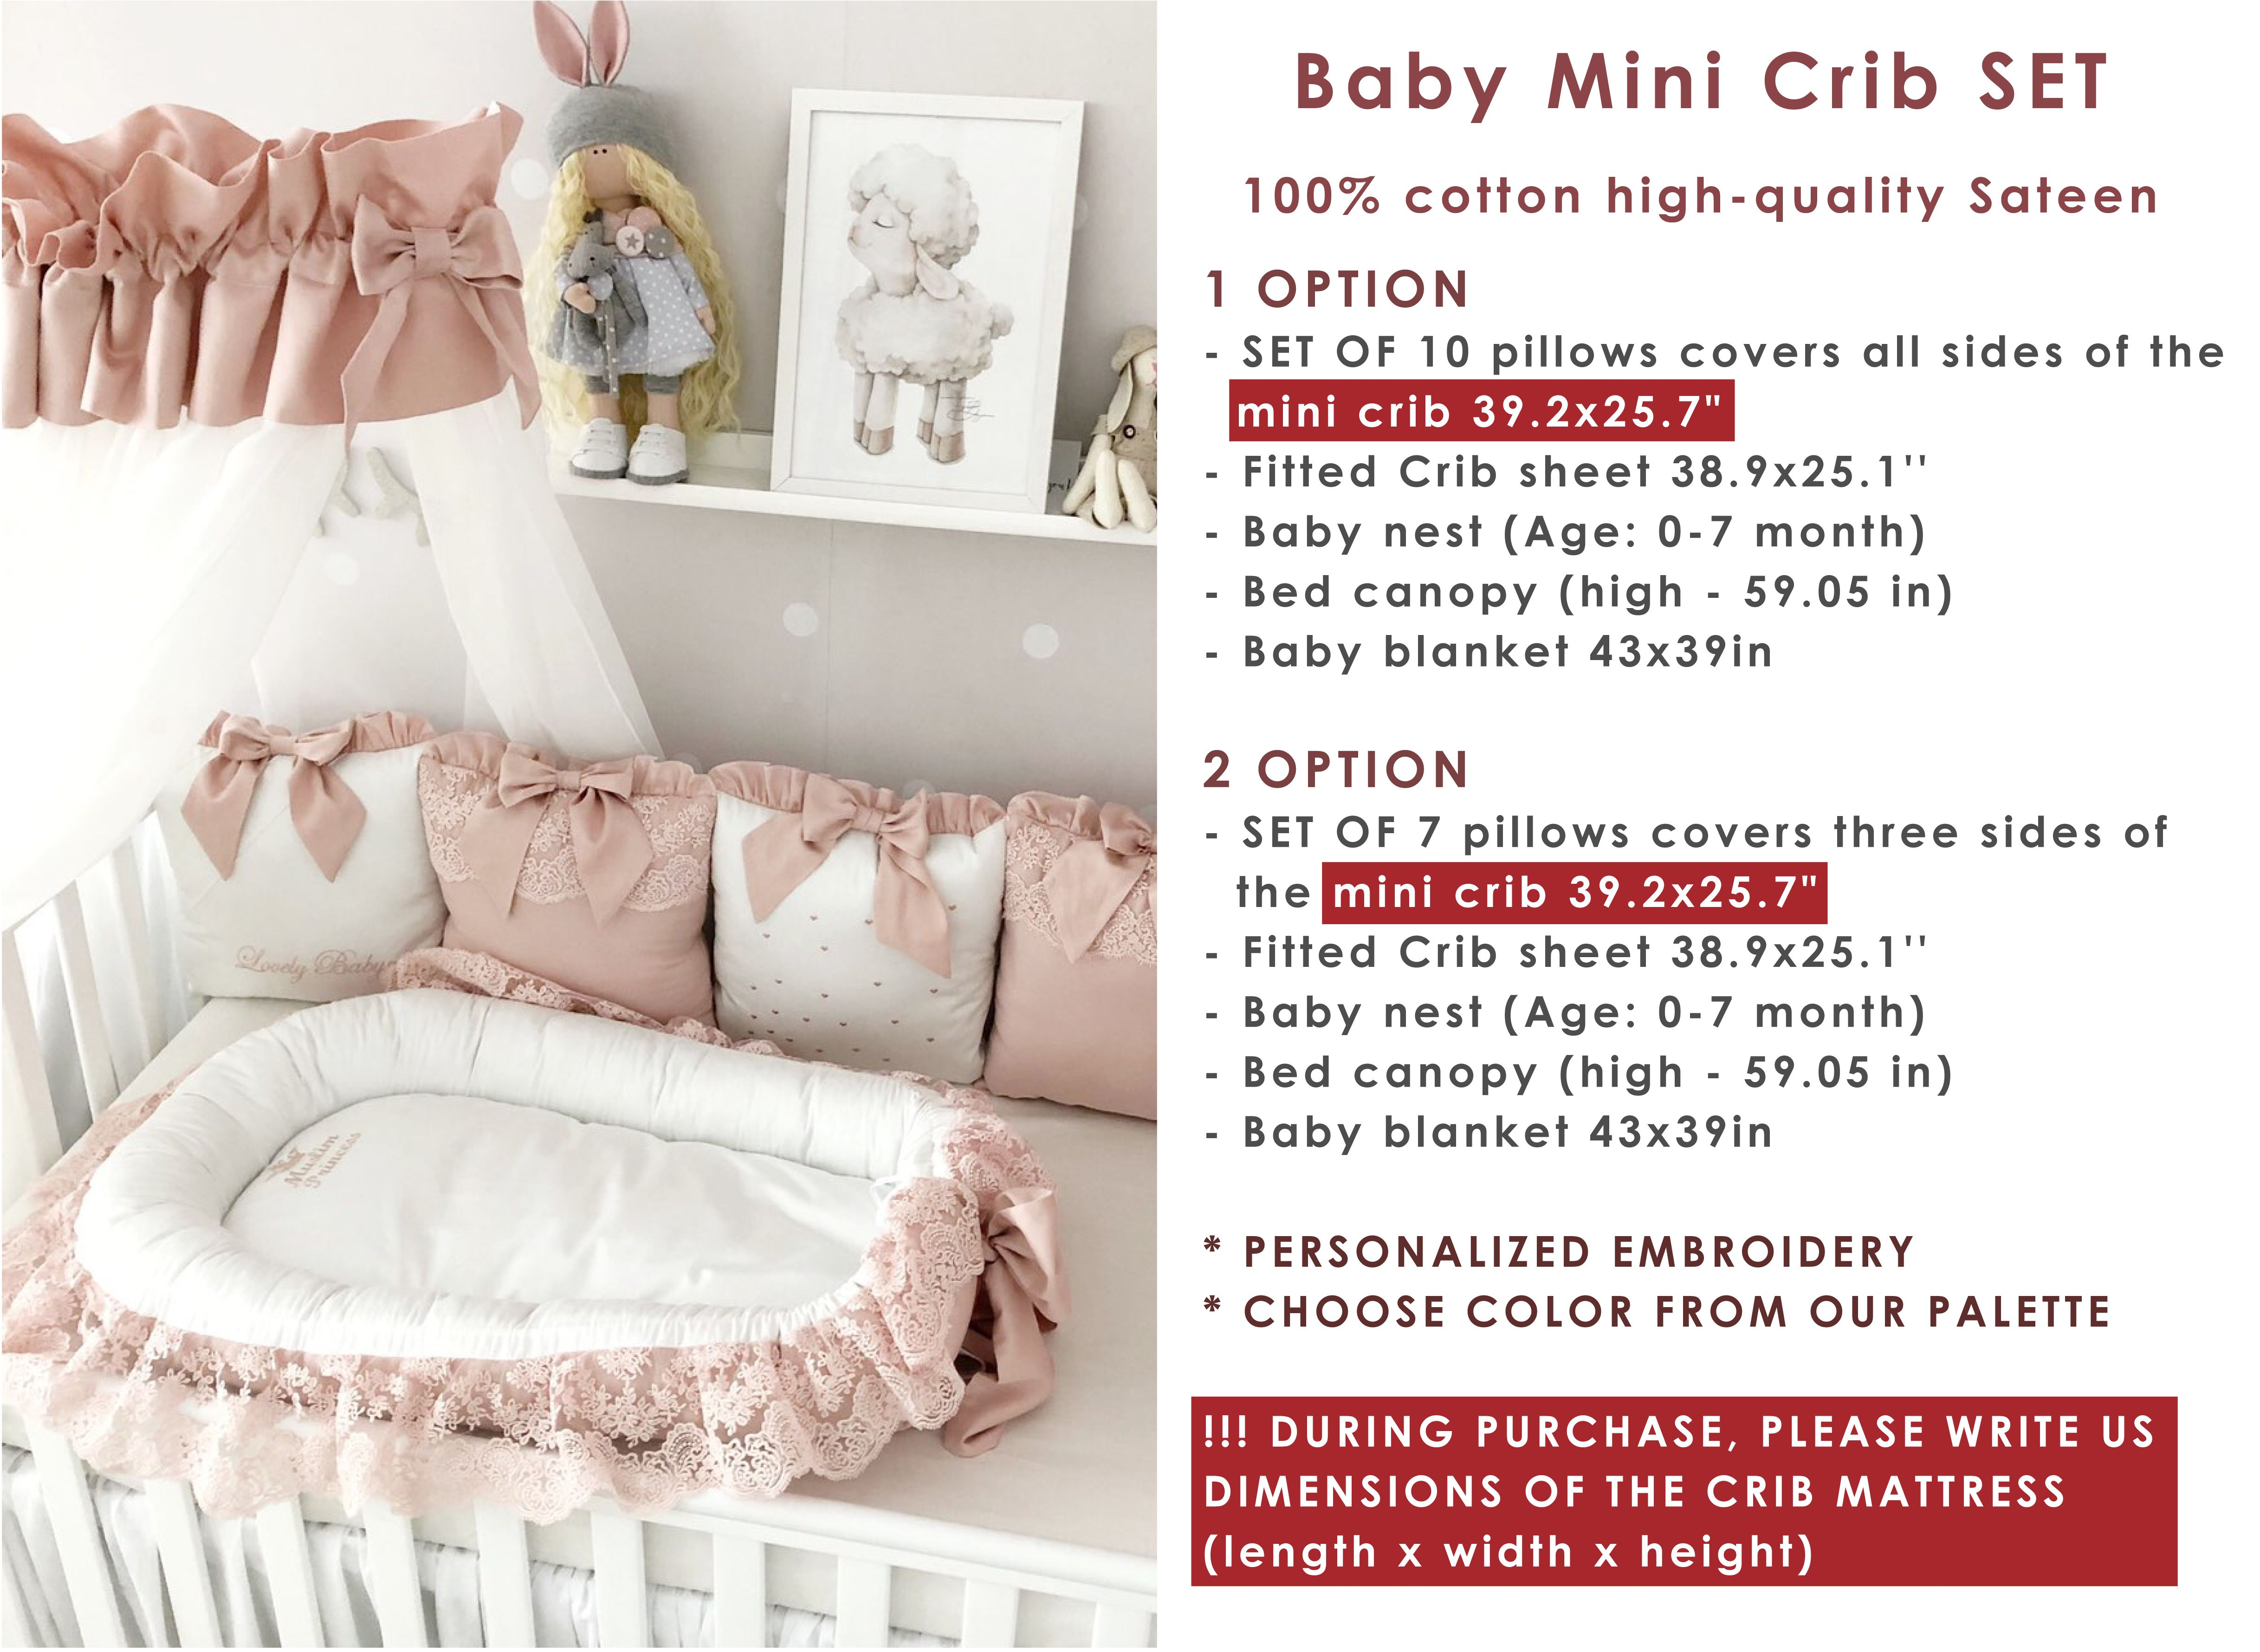 Baby Girl Bedding Crib Set Cot Bedding Set For Girl Personalized Baby Bedding Deluxe Baby Nest Baby Sleeper Bumper Pads Receiving Blanket Crib Bedding Girl Mini Crib Bedding Crib Sets